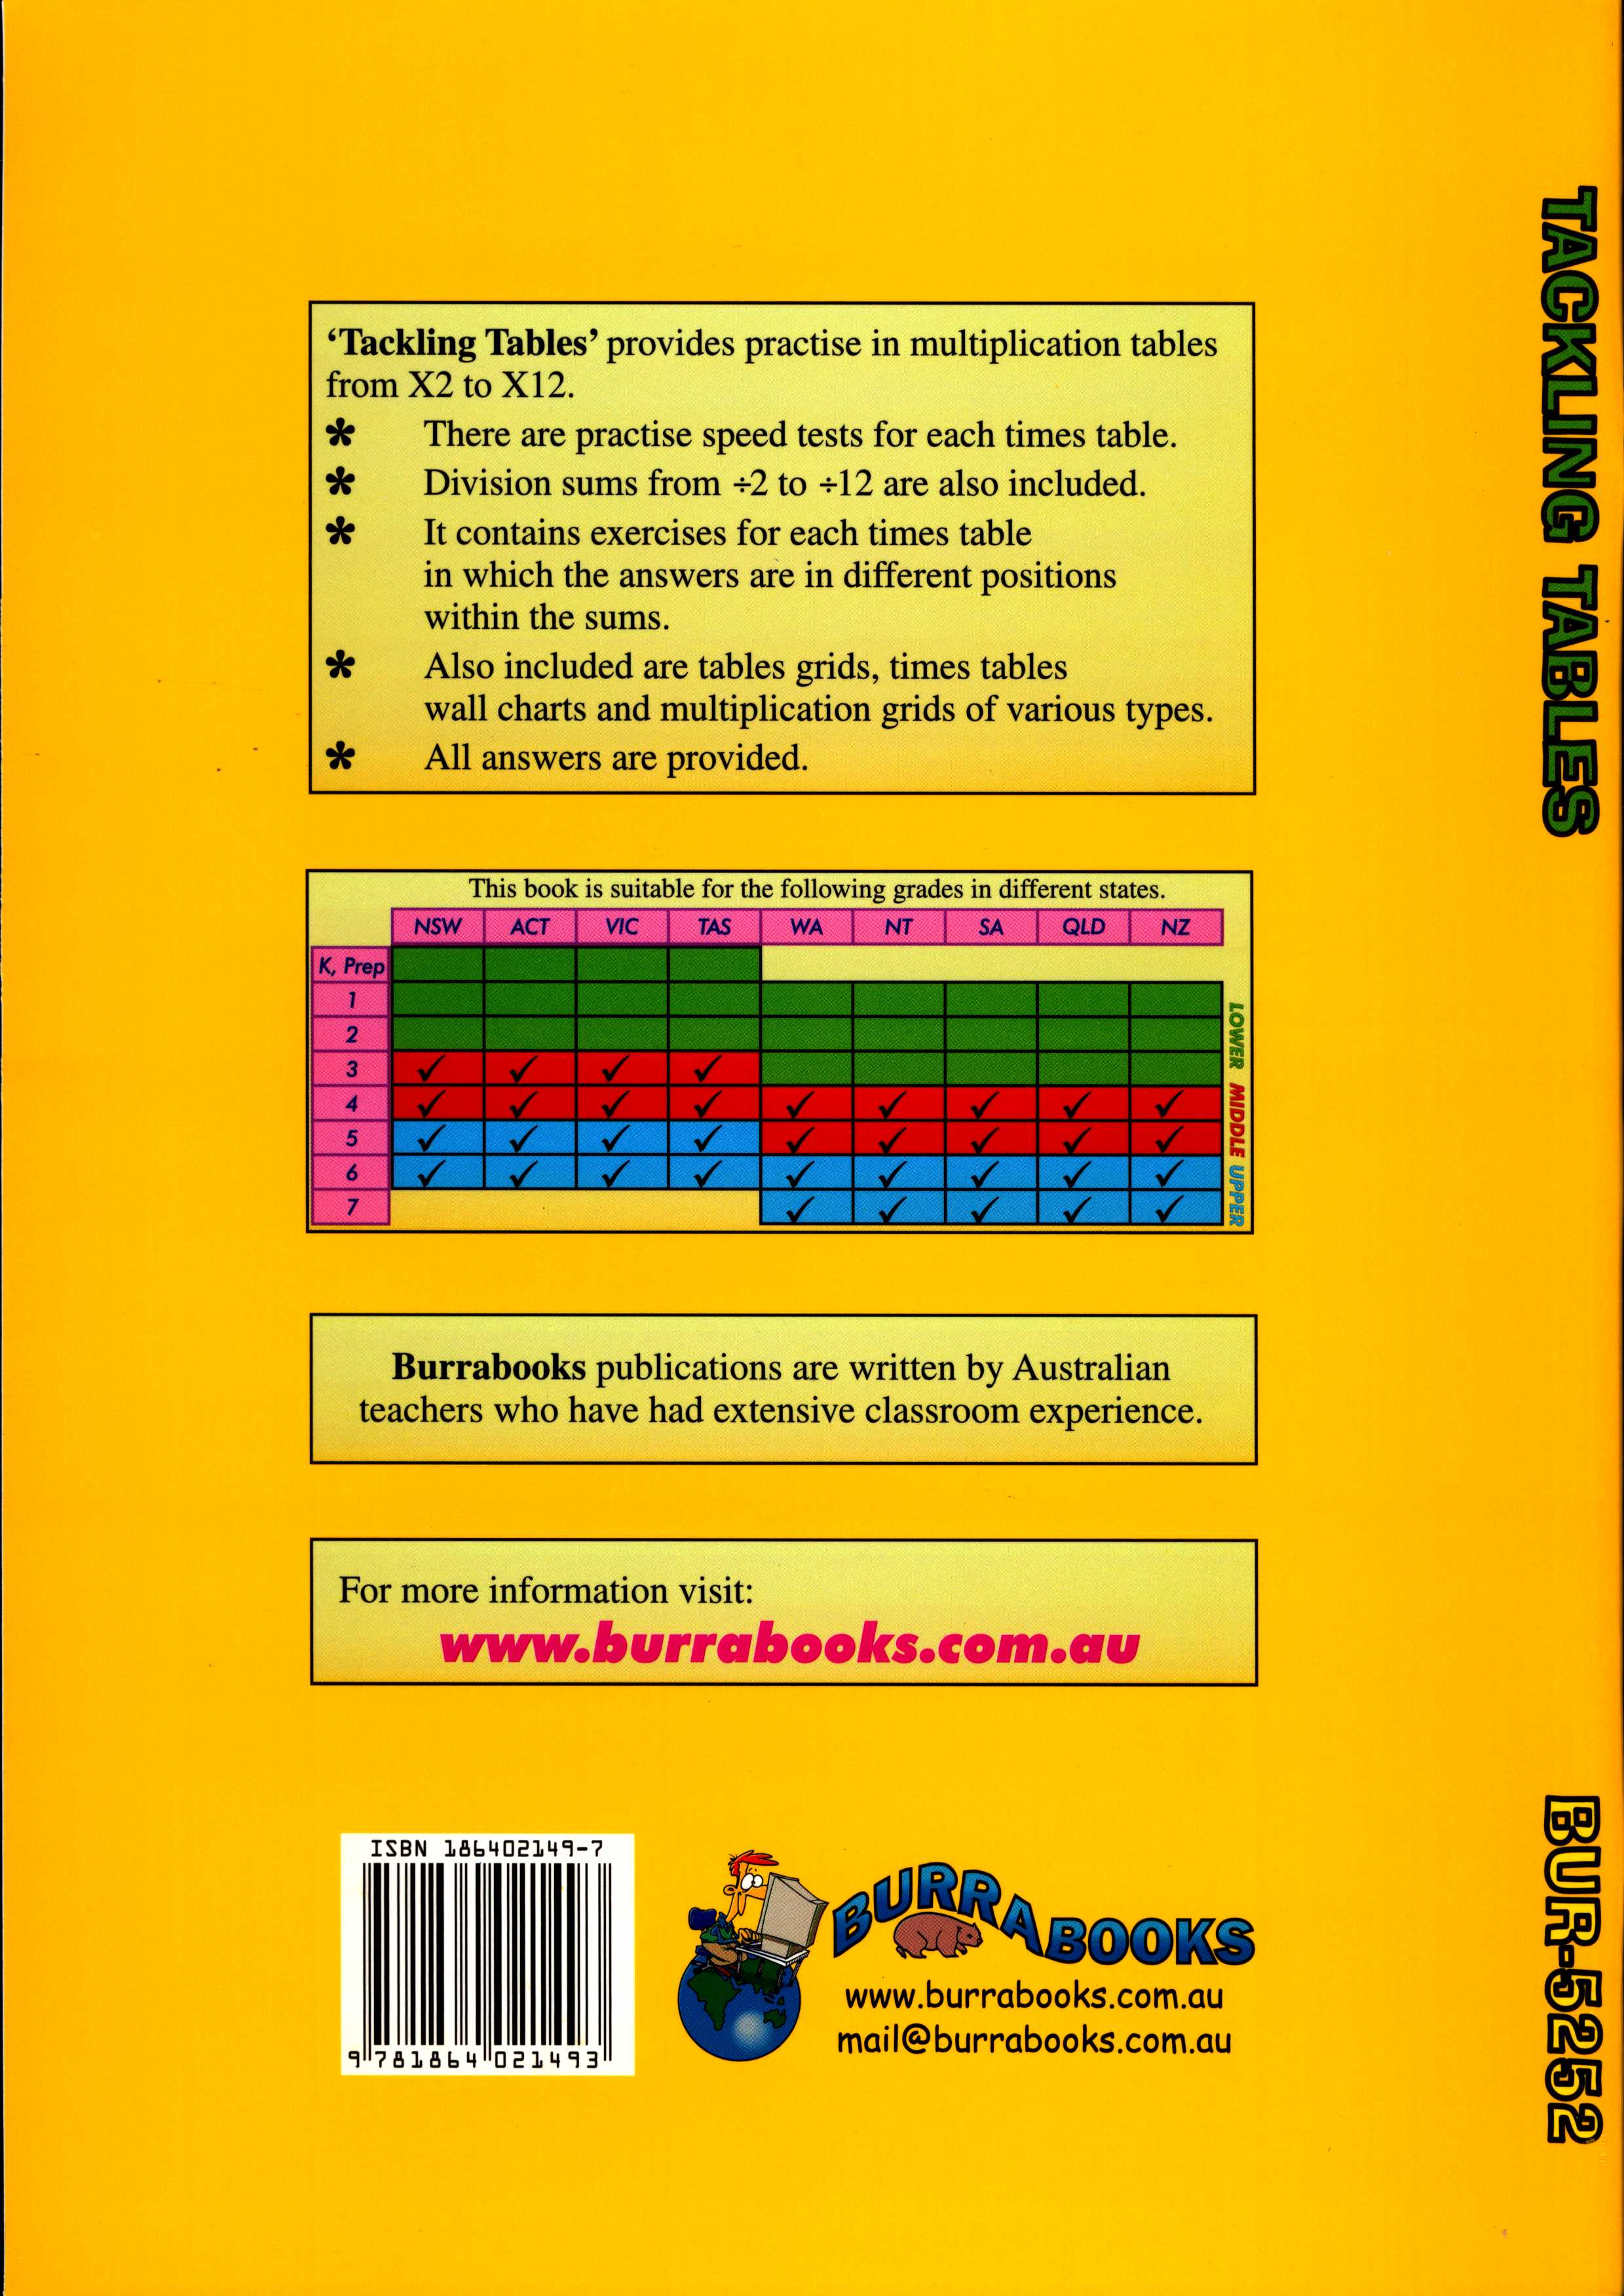 All multiplication tables gallery periodic table images tackling tables burrabooks australian educational books tackling tables 41890 gamestrikefo gallery gamestrikefo Image collections